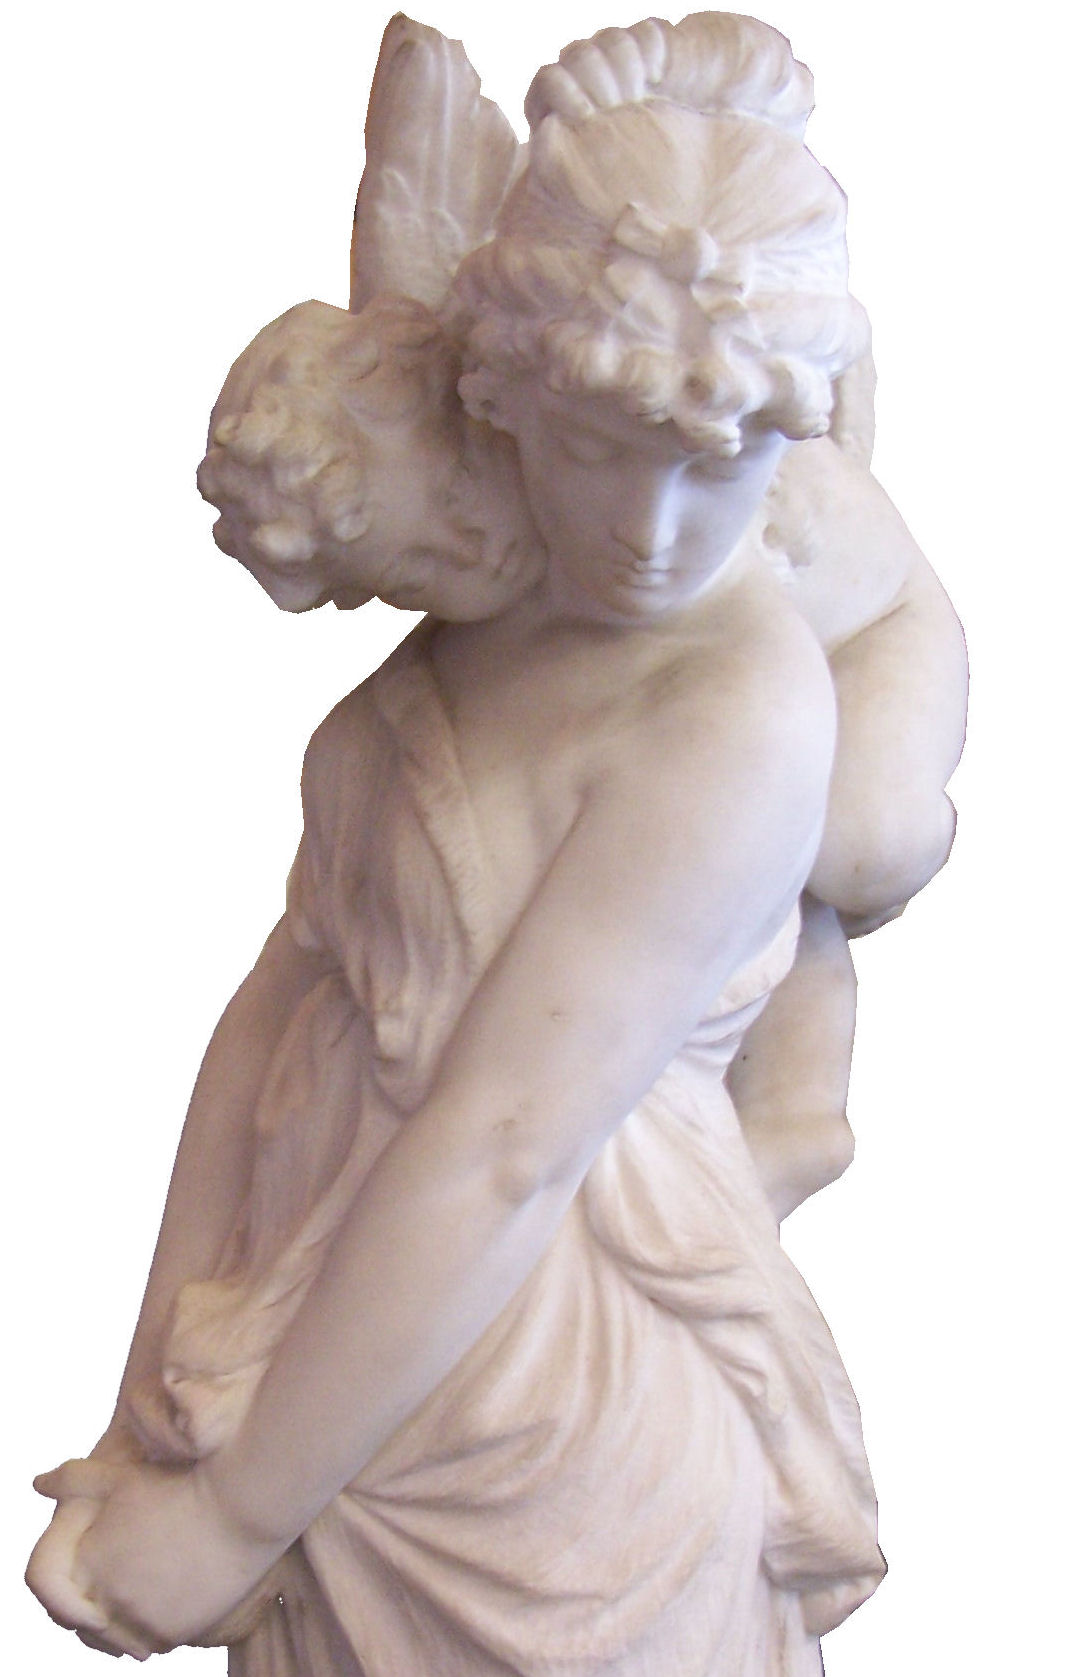 ANTONIO ROSSETTI; an Italian white marble group of Cupid and Psyche